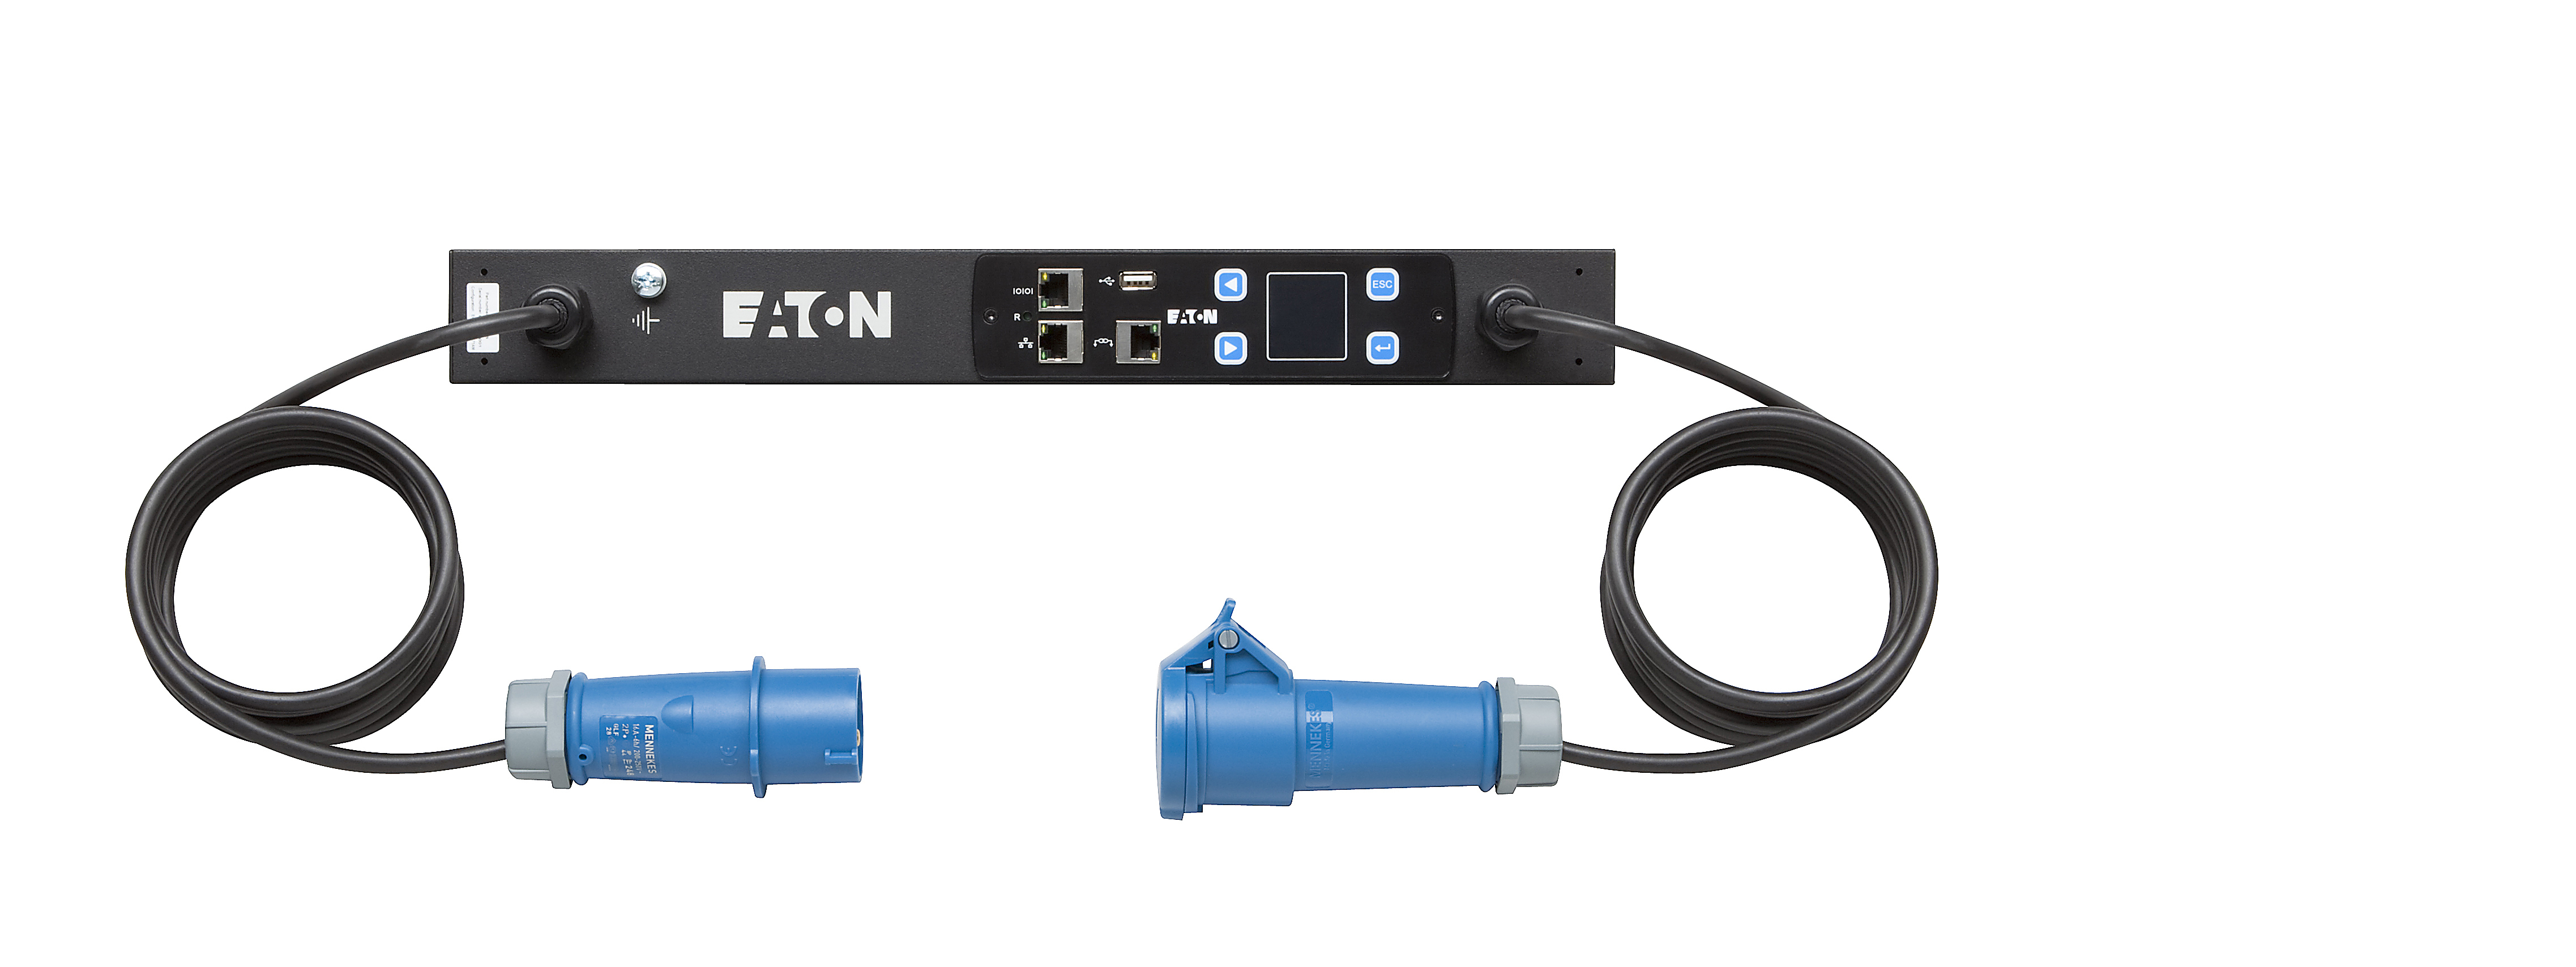 Power Meters In Line : Eaton g in line meter nsse